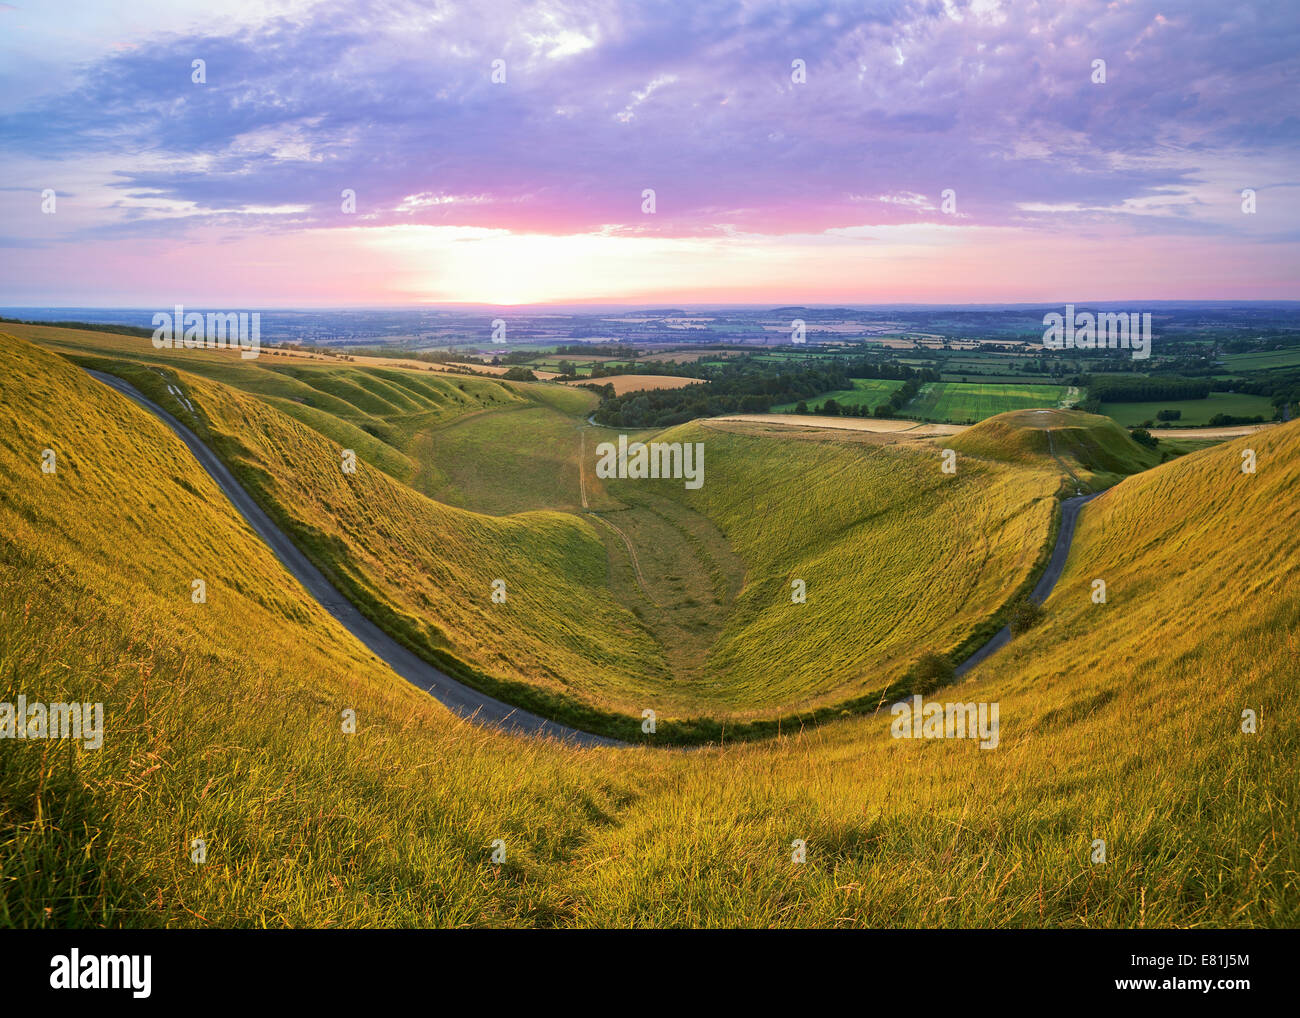 The Manger Uffington, Oxfordshire, England, UK. - Stock Image